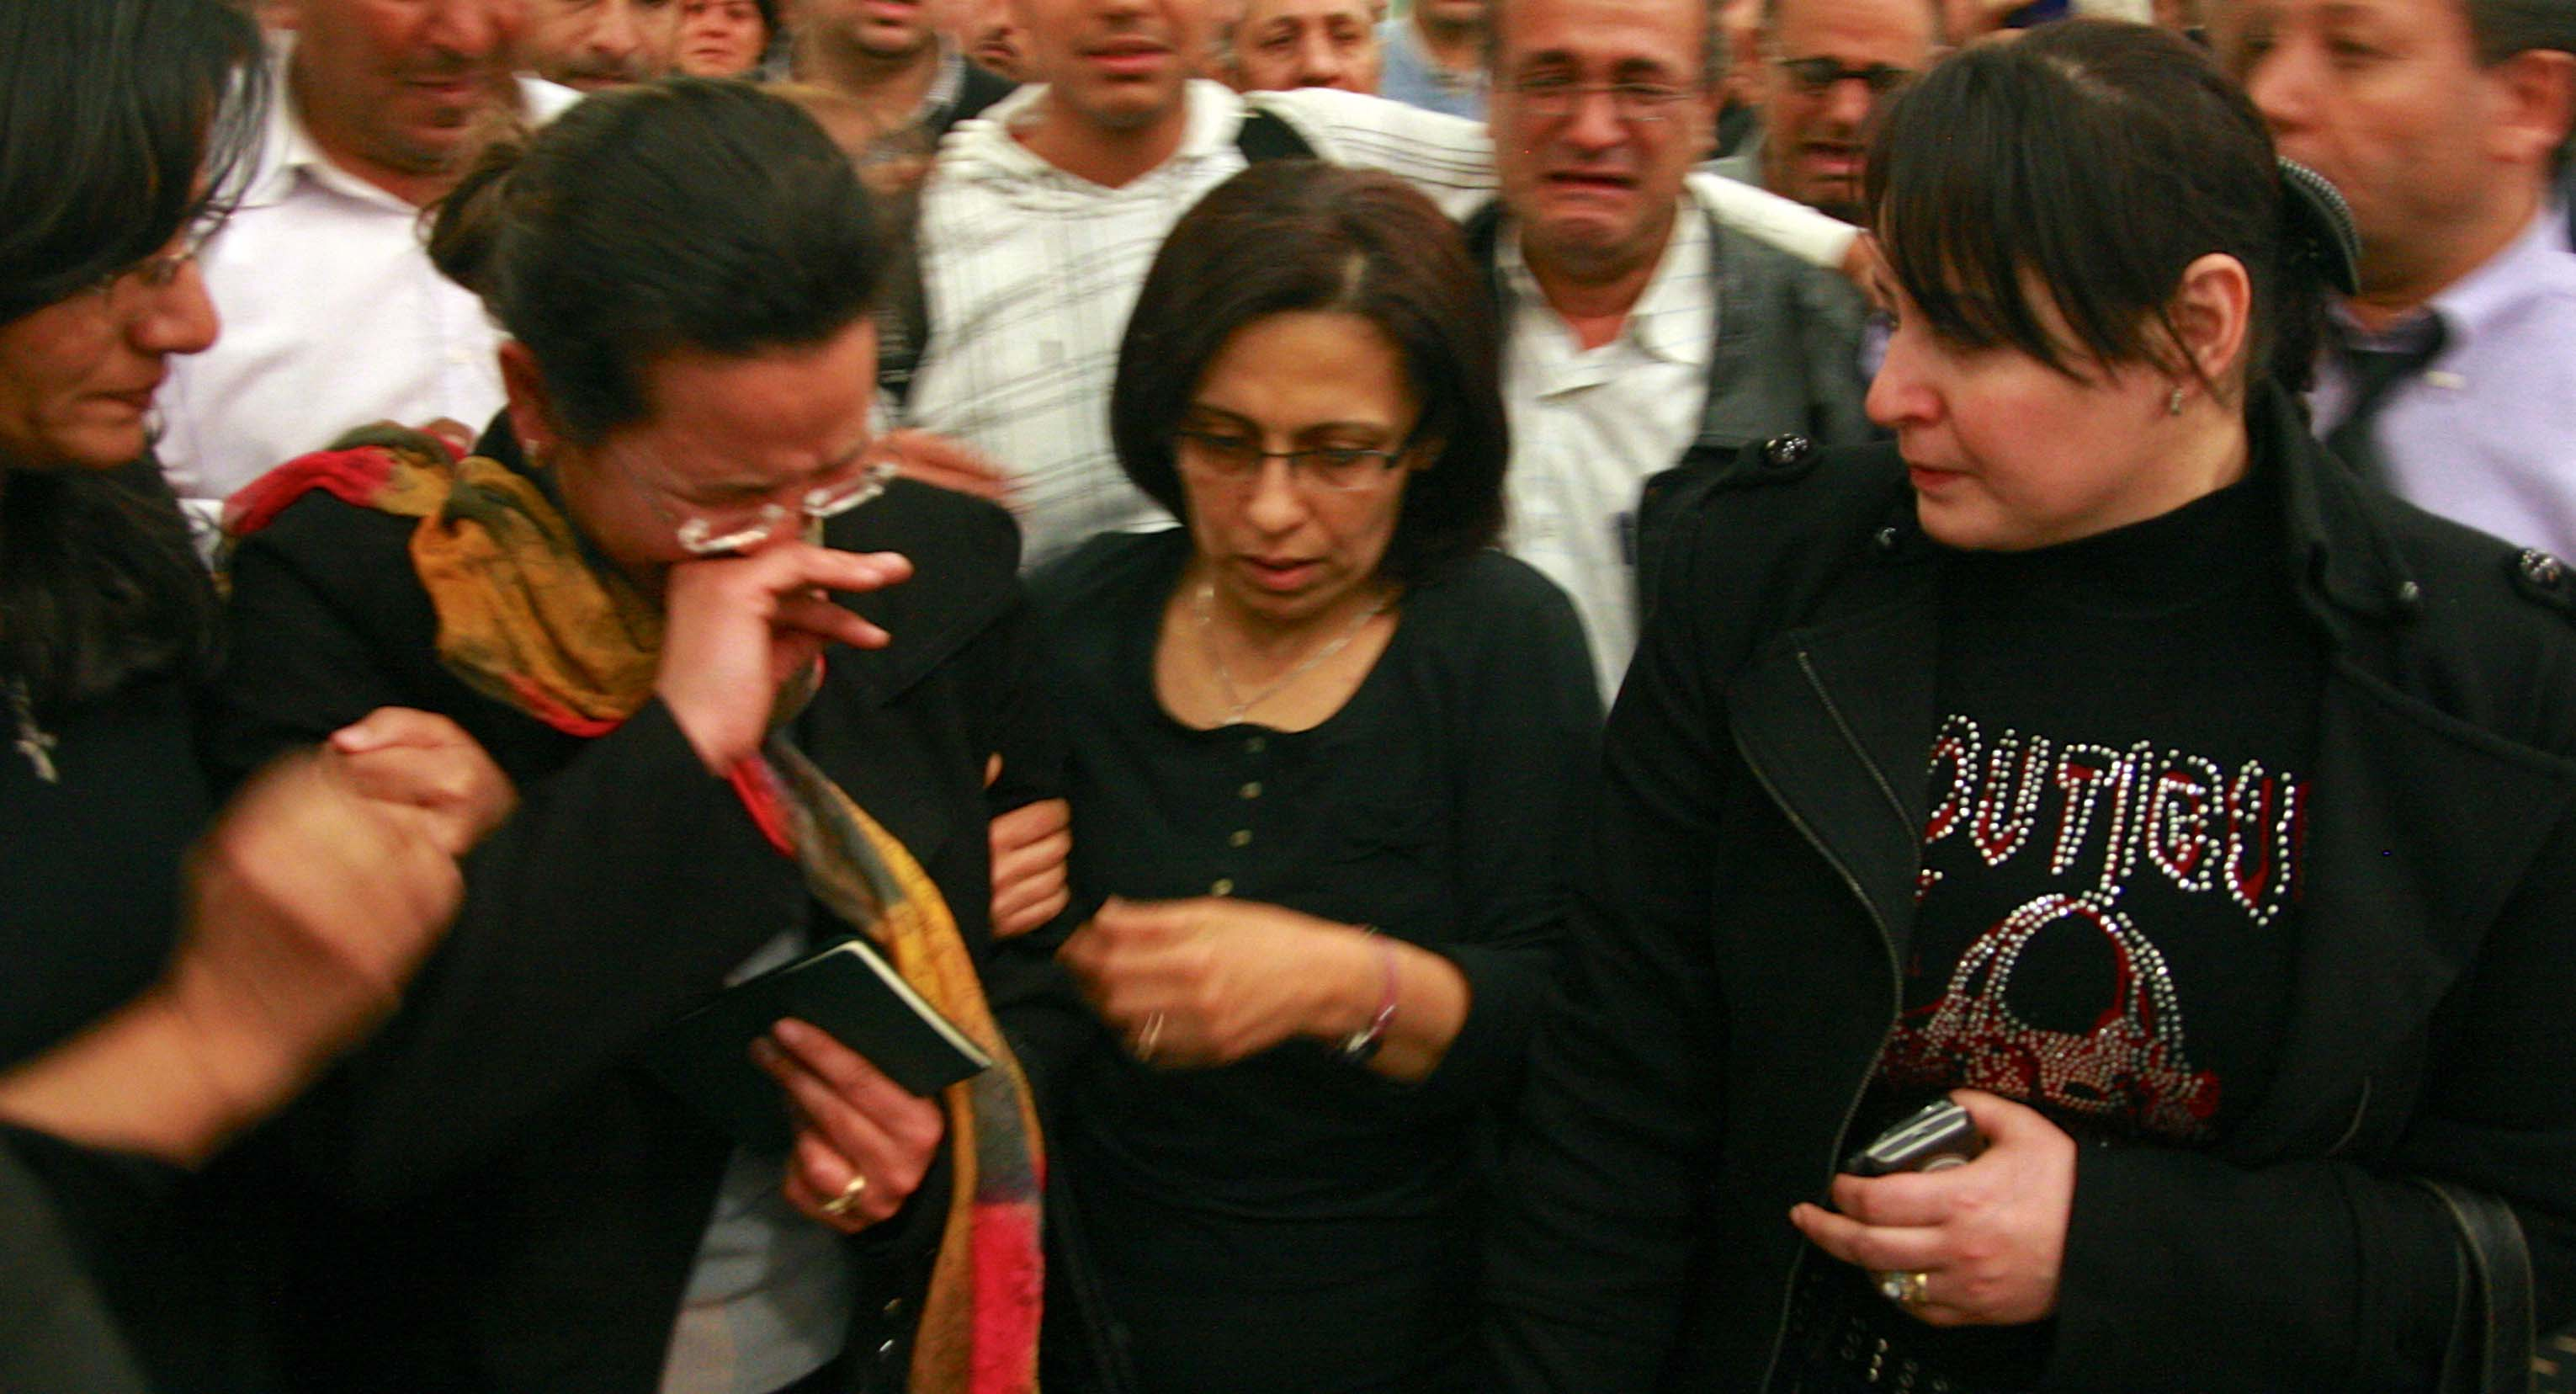 More than 100 Christians greeted Atallah's widow Ragaa Nagah (second from left) at Cairo's airport when she arrived from Libya. (Morning Star News photo).